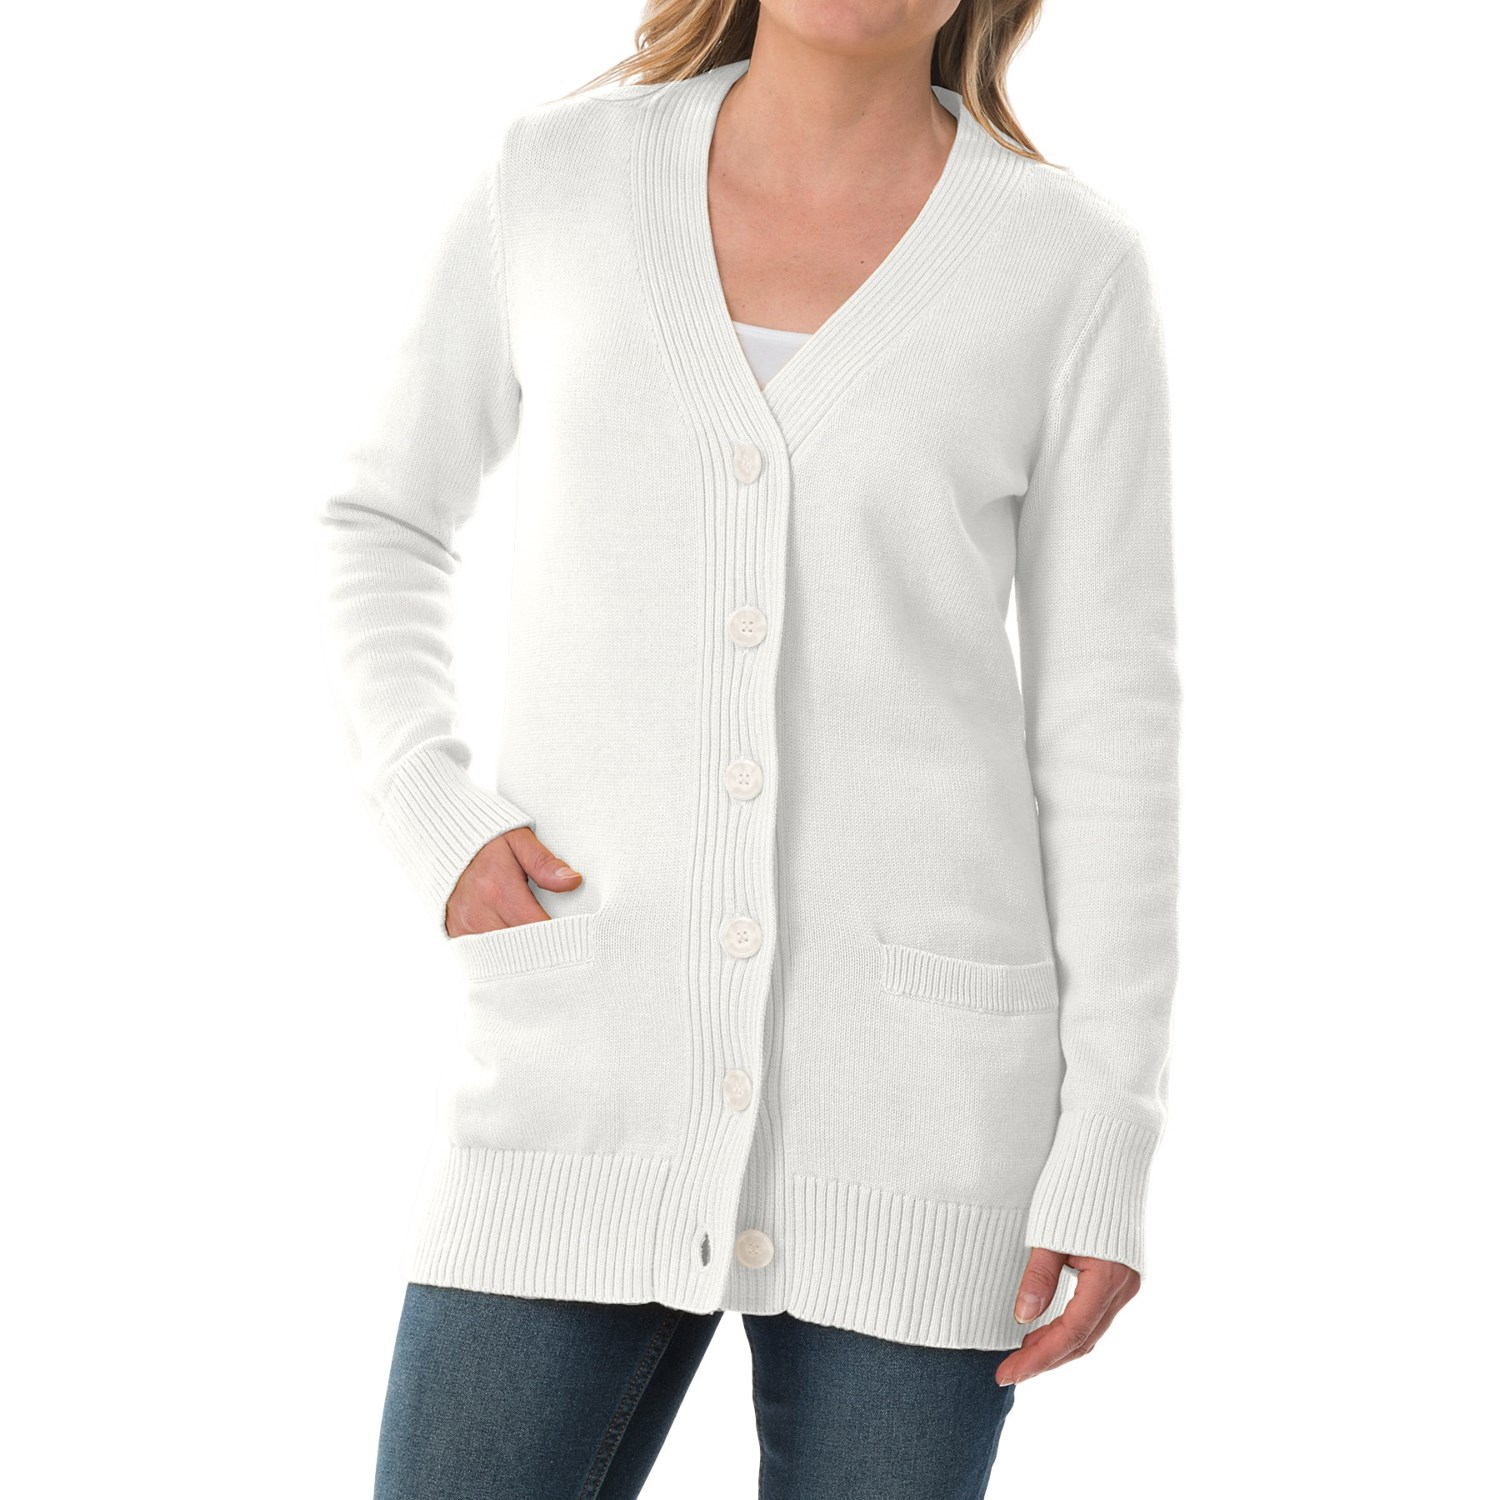 Shop for and buy white cardigan online at Macy's. Find white cardigan at Macy's.